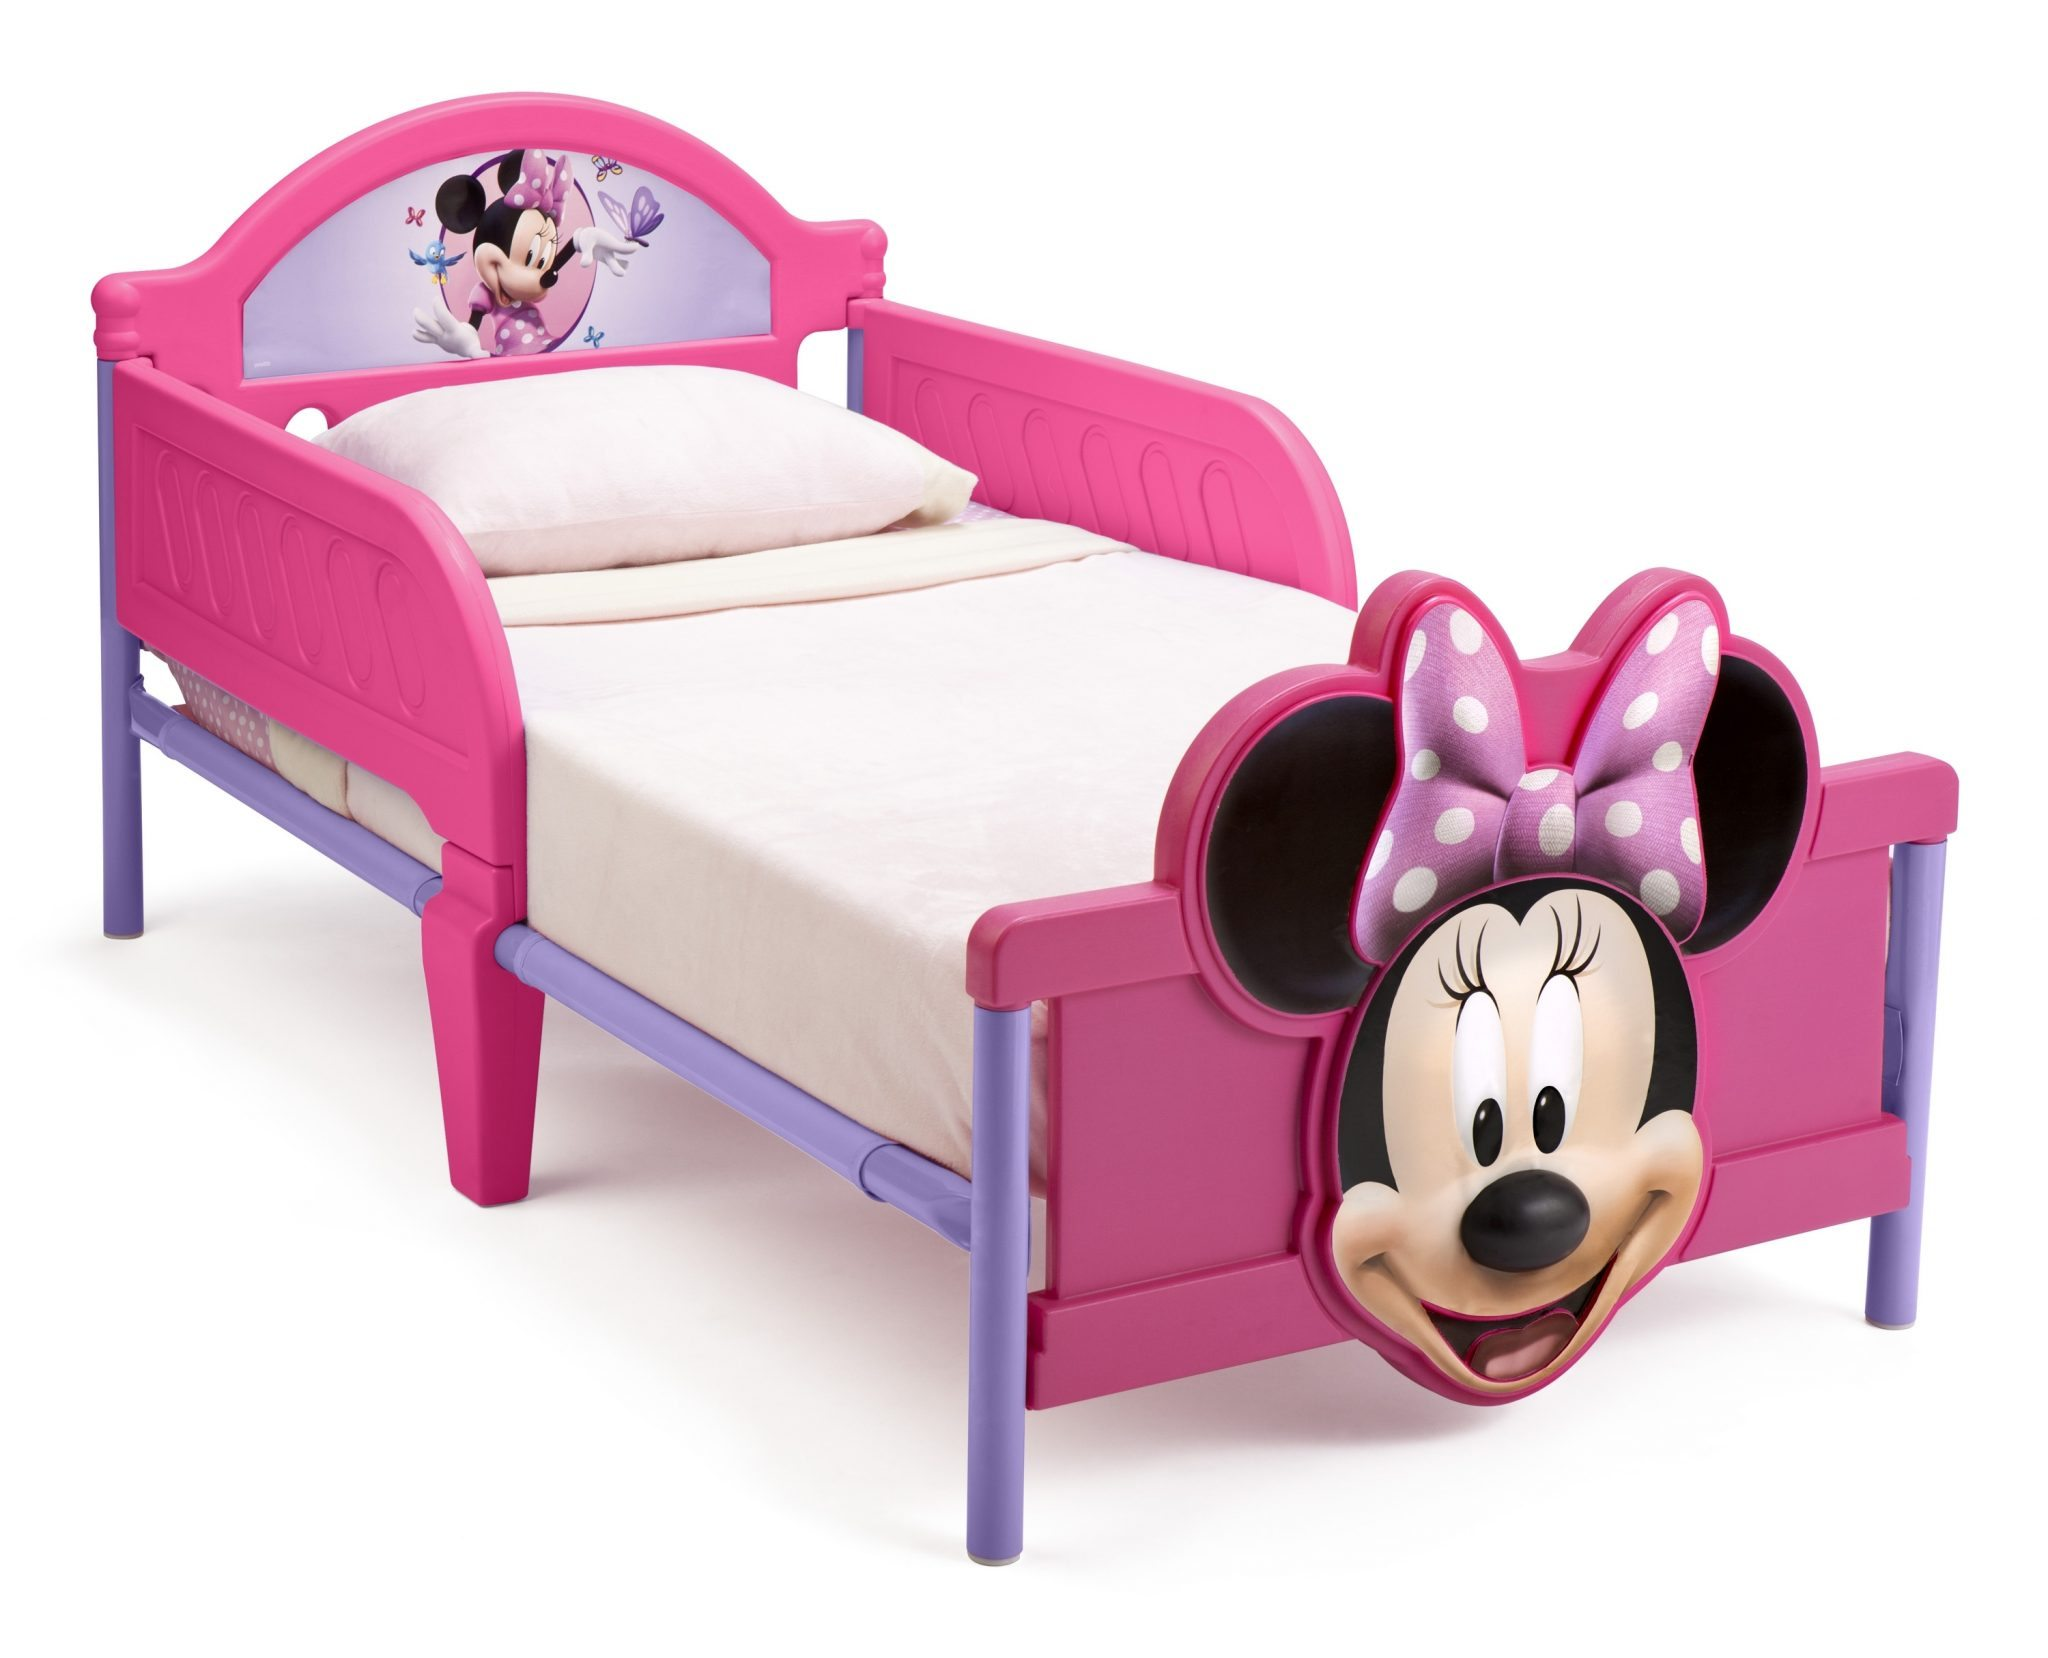 best twin bed for a toddler photo - 5